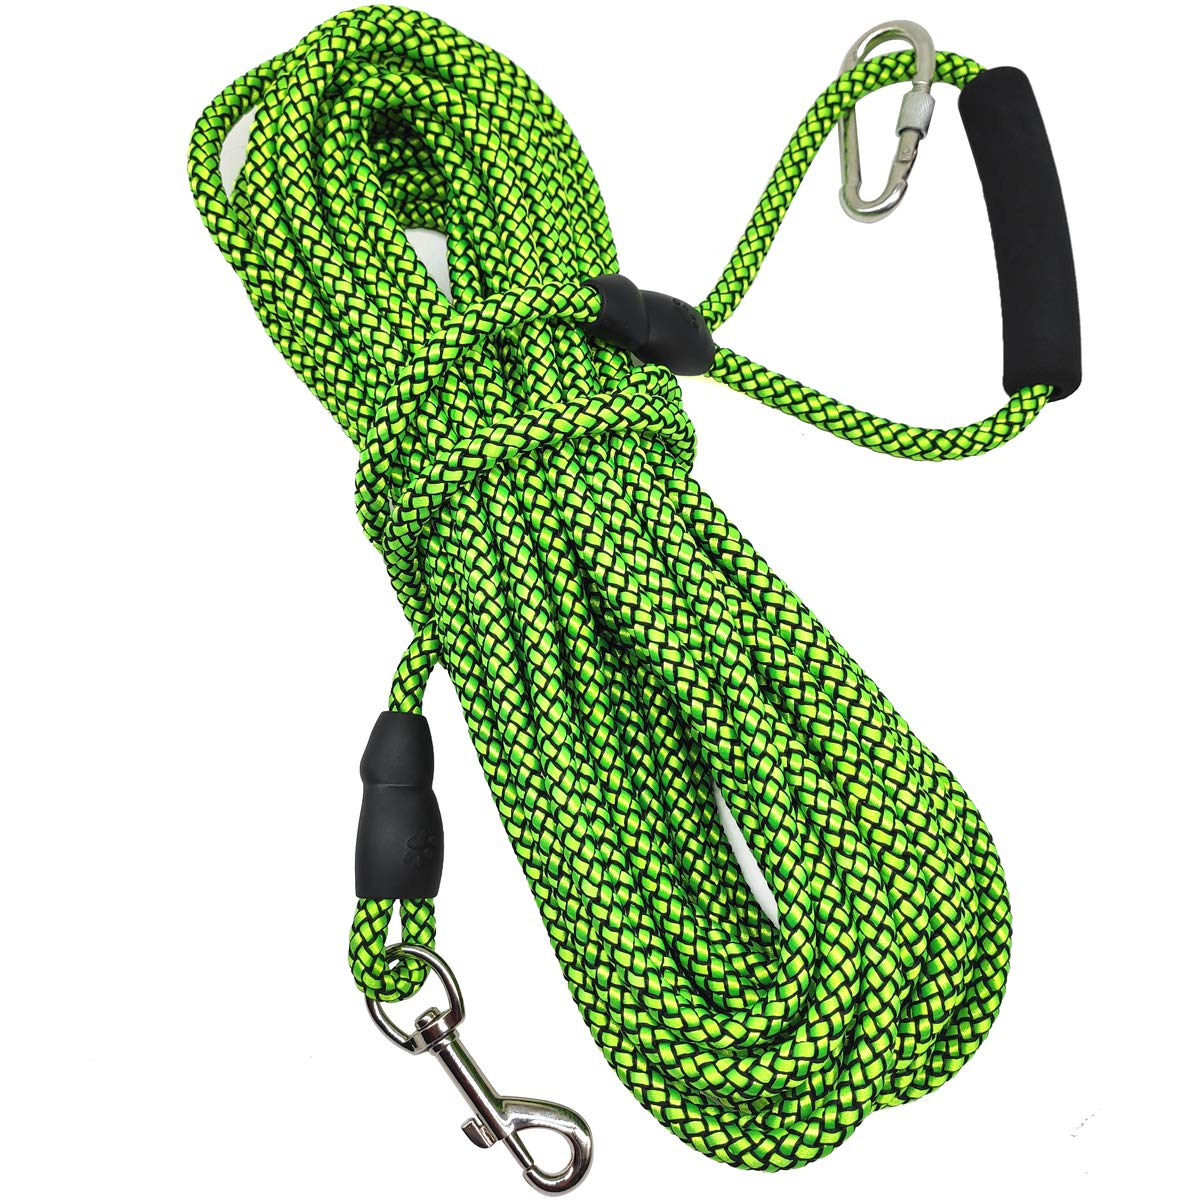 Mycicy 50FT Long Line Training Rope Leash, Soft Handle Heavy Duty Nylon Recall Lead for Medium Large Dogs by Mycicy